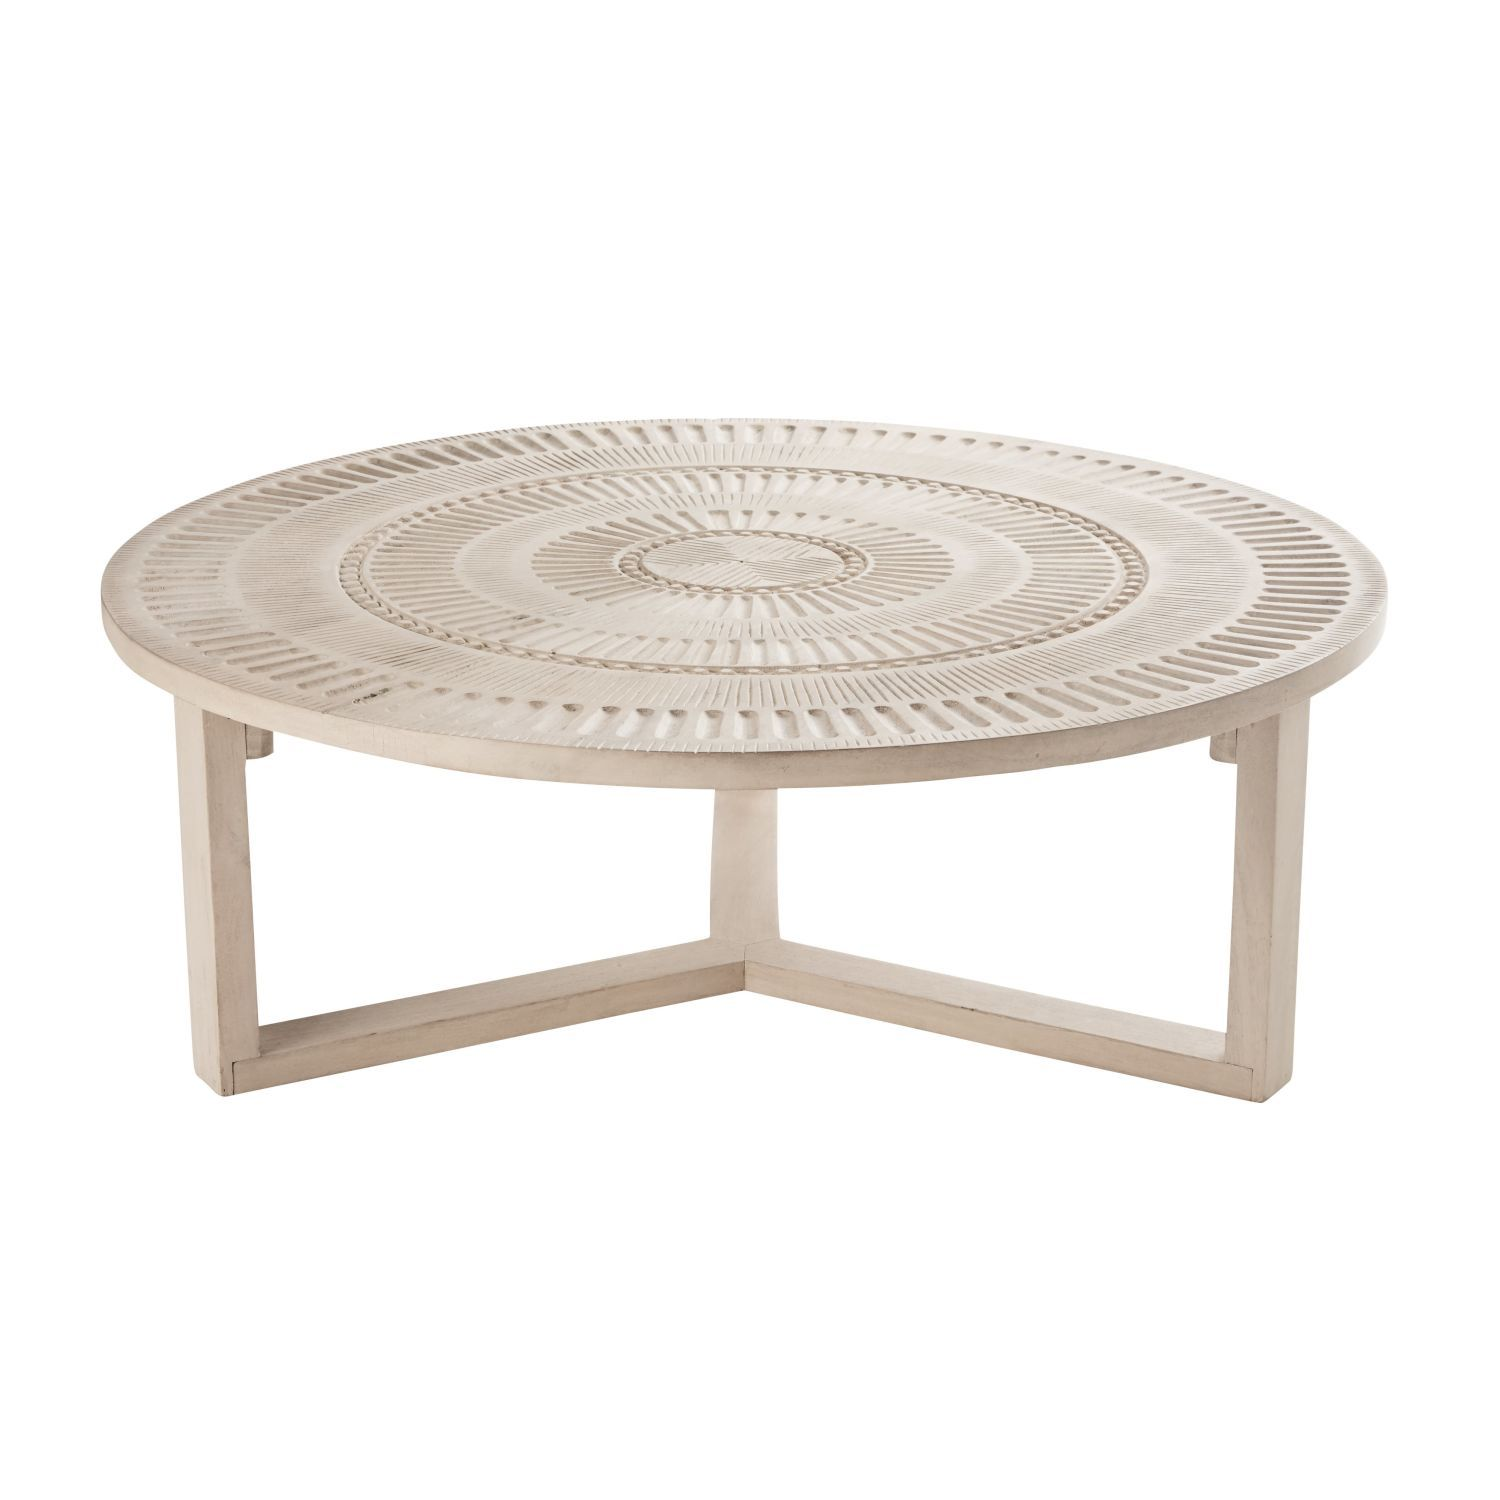 Table Basse Coffee Table Wood Round Wood Coffee Table Scandi Coffee Table [ 1500 x 1500 Pixel ]